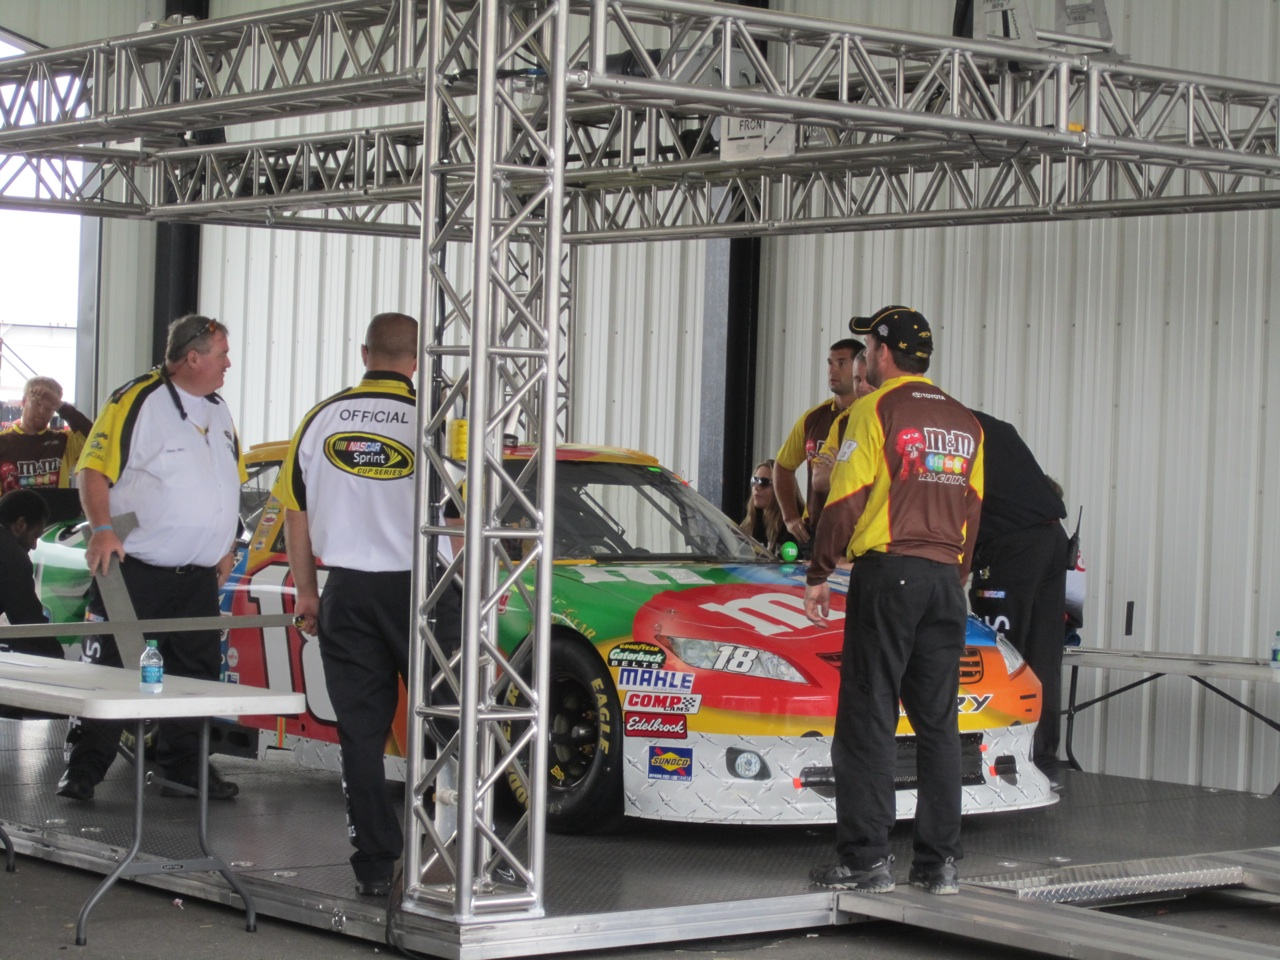 Weighing And Measuring Of The Race Cars